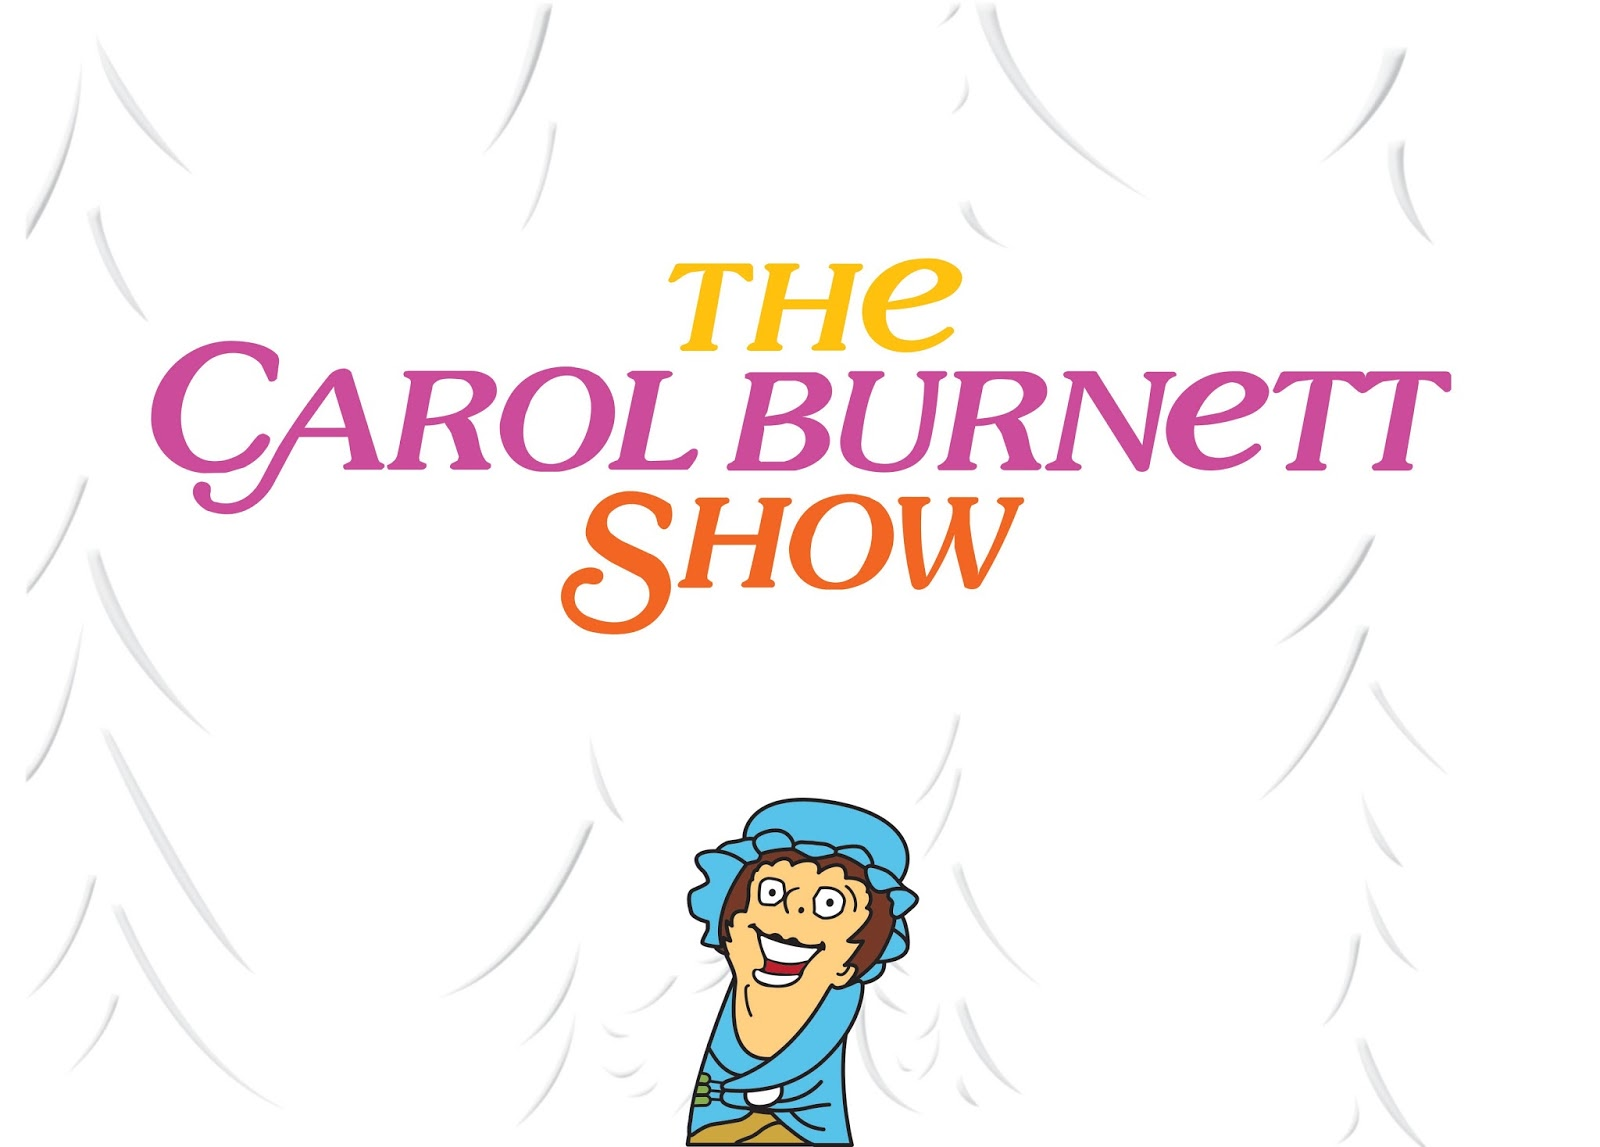 The Carol Burnett Show (Jan 24 – Feb 1)